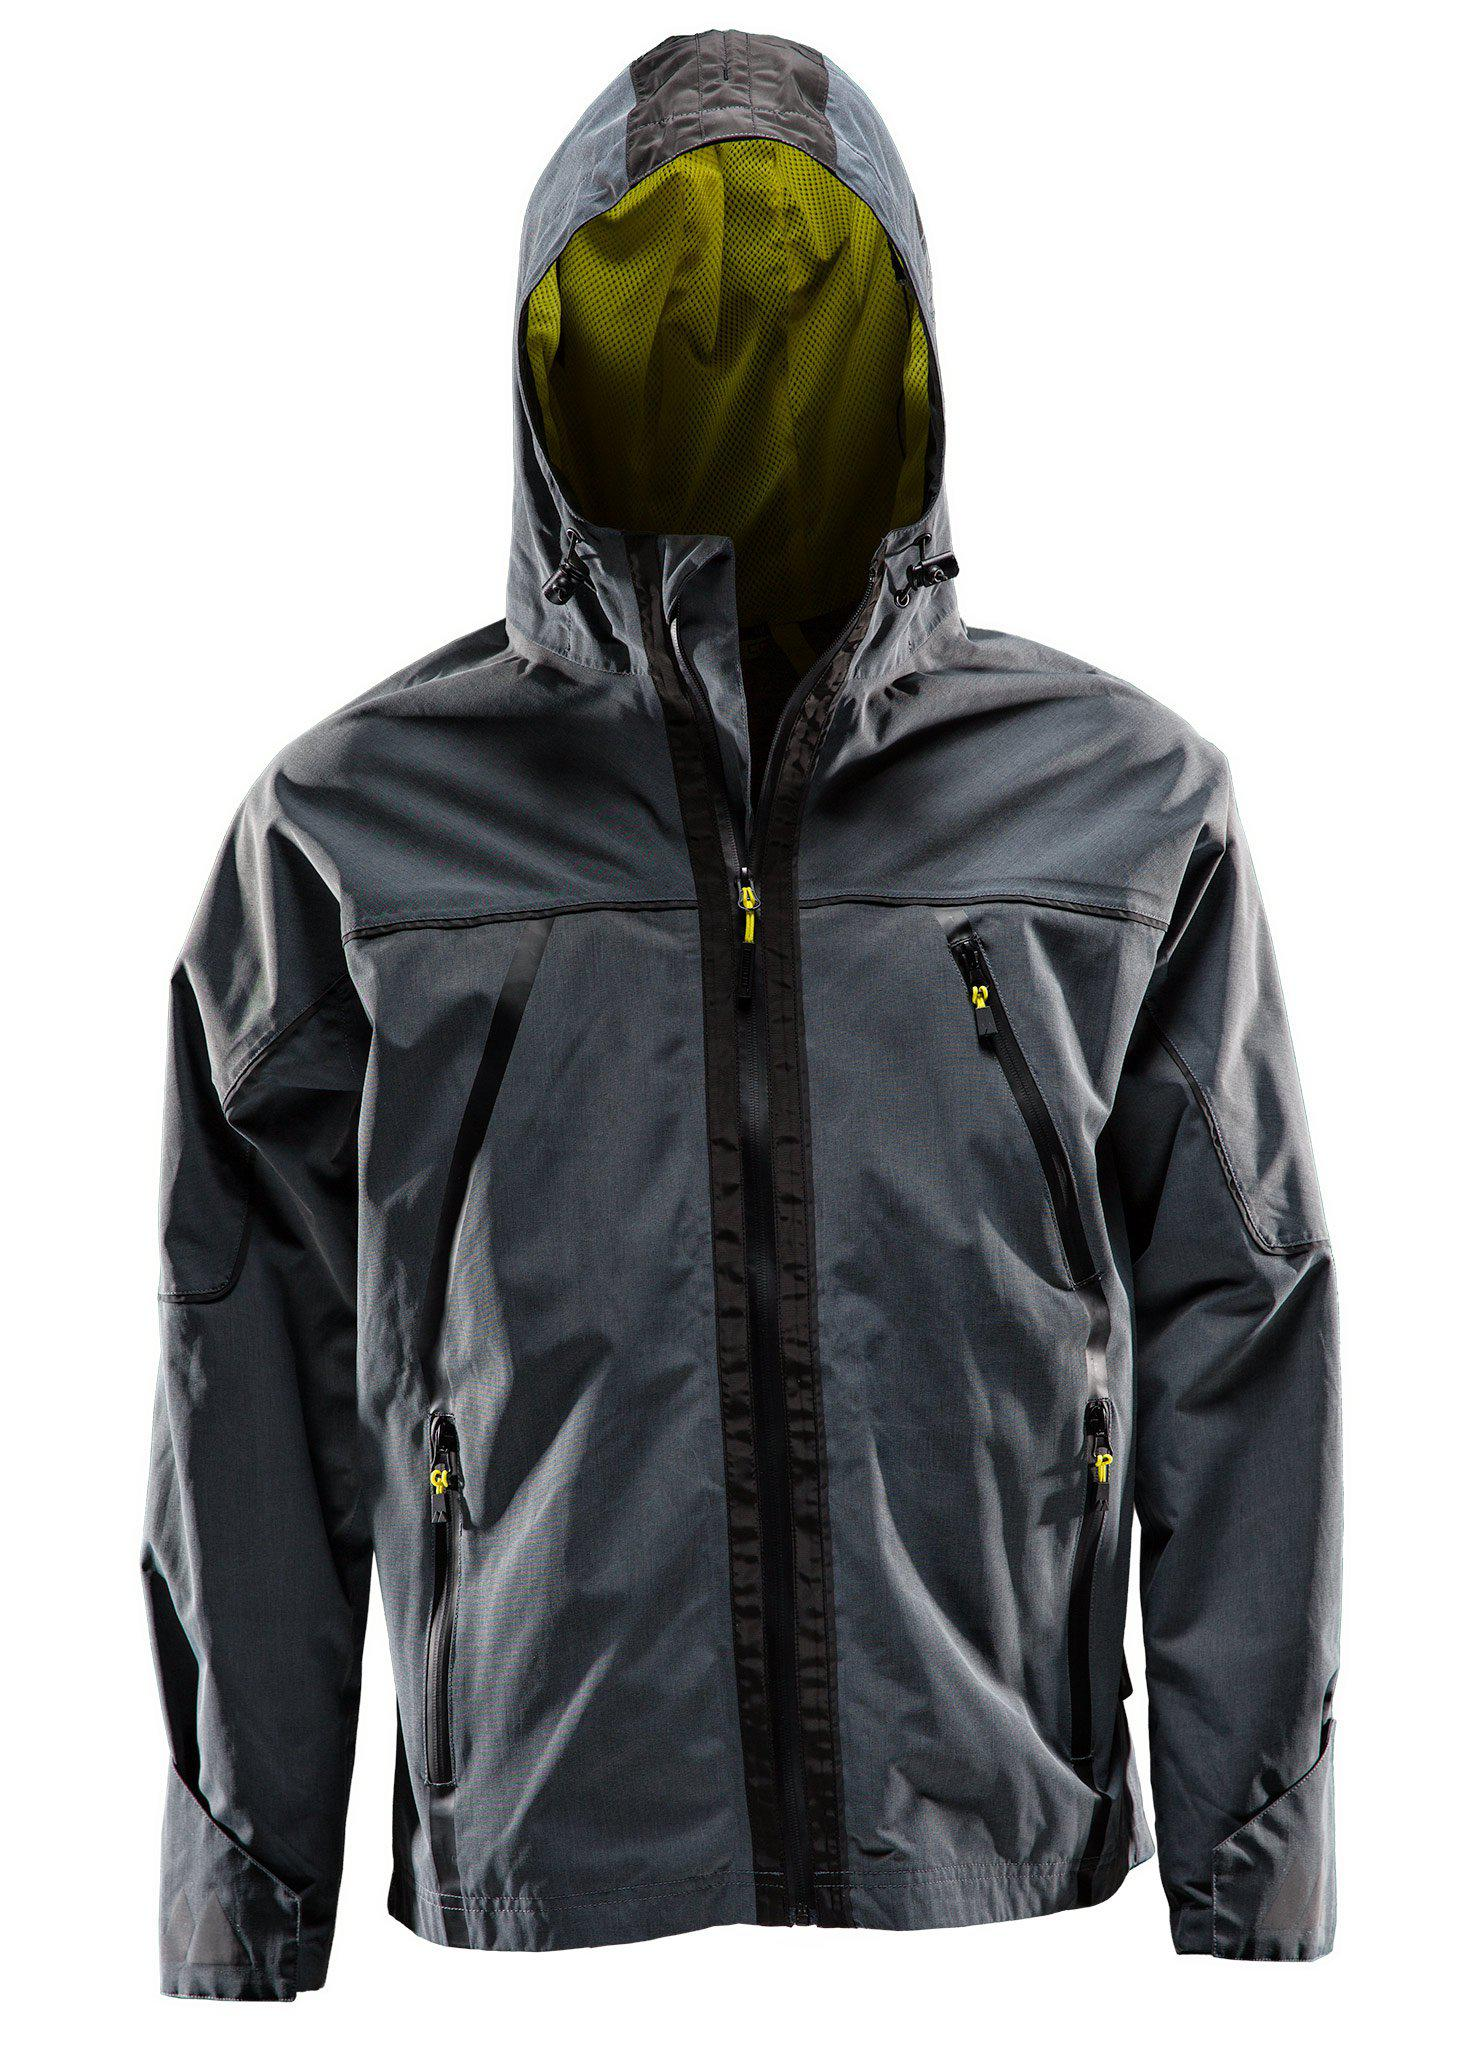 Shell jacket, Wind jacket, Anthracite grey, S